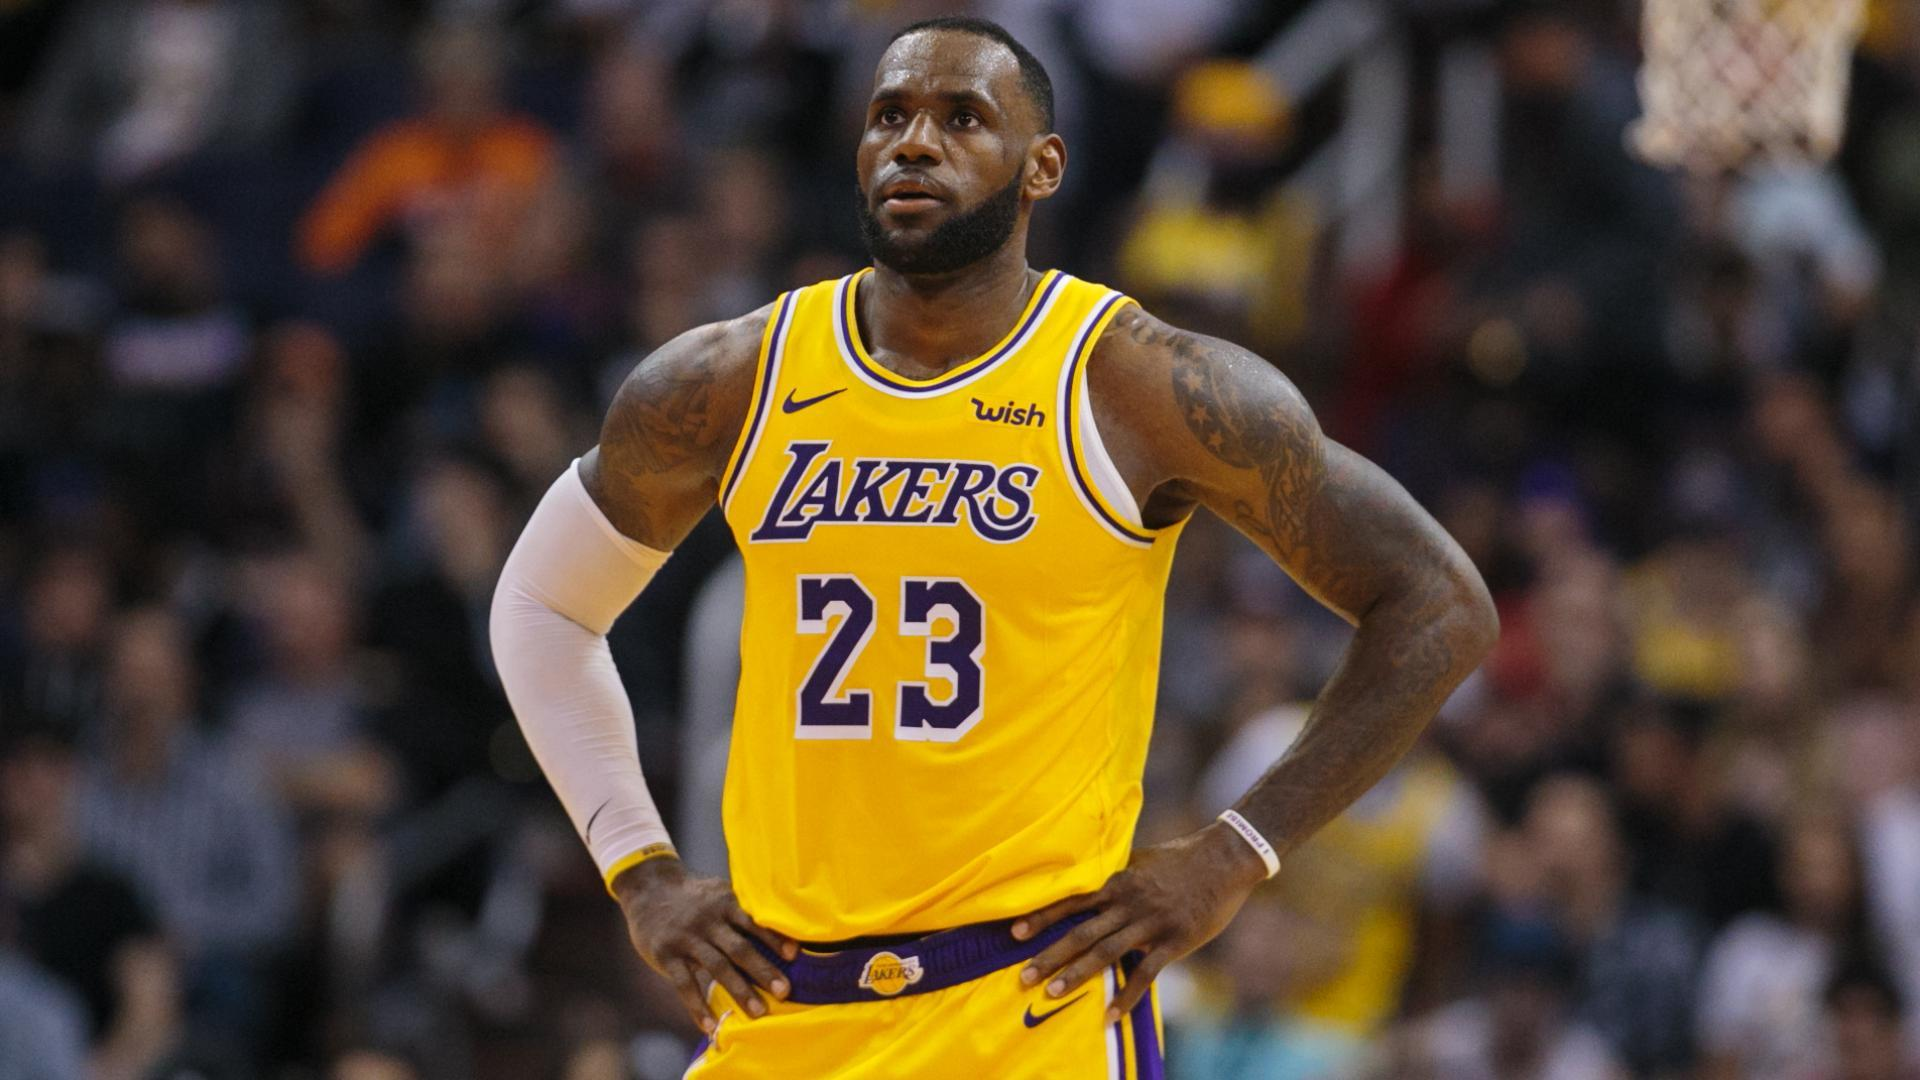 aa4c4fc30953 Lakers must win offseason to avoid this season s embarrassment turning  uglier